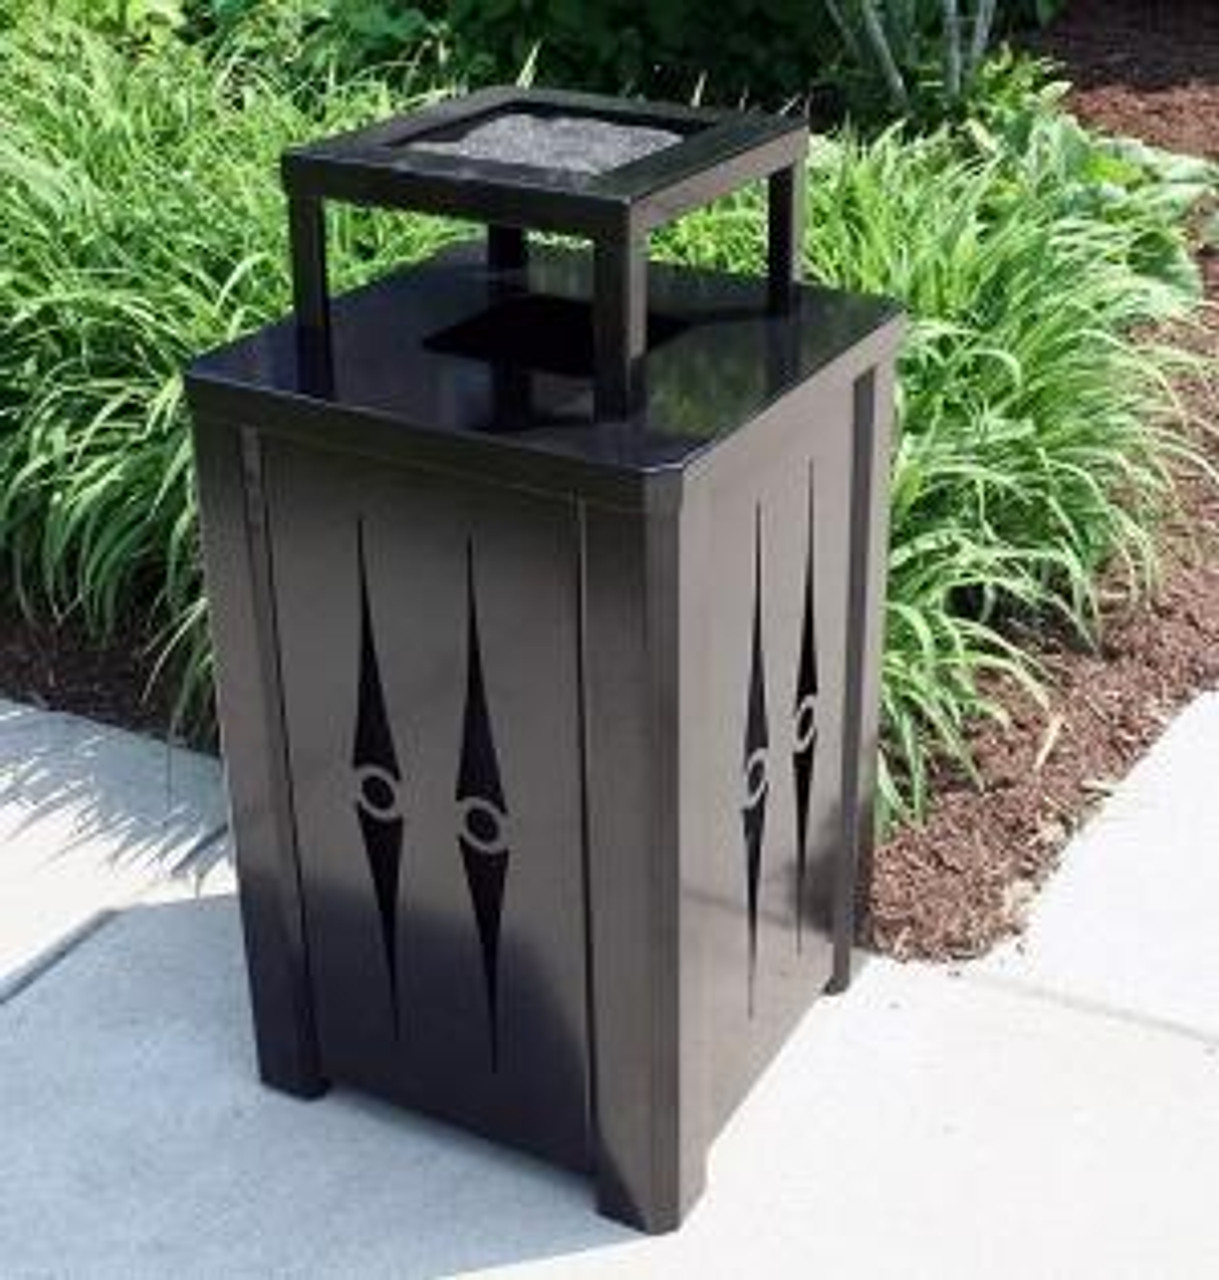 32 Gallon Outdoor Metal Trash Can Optional Ashtray and Rain Cover